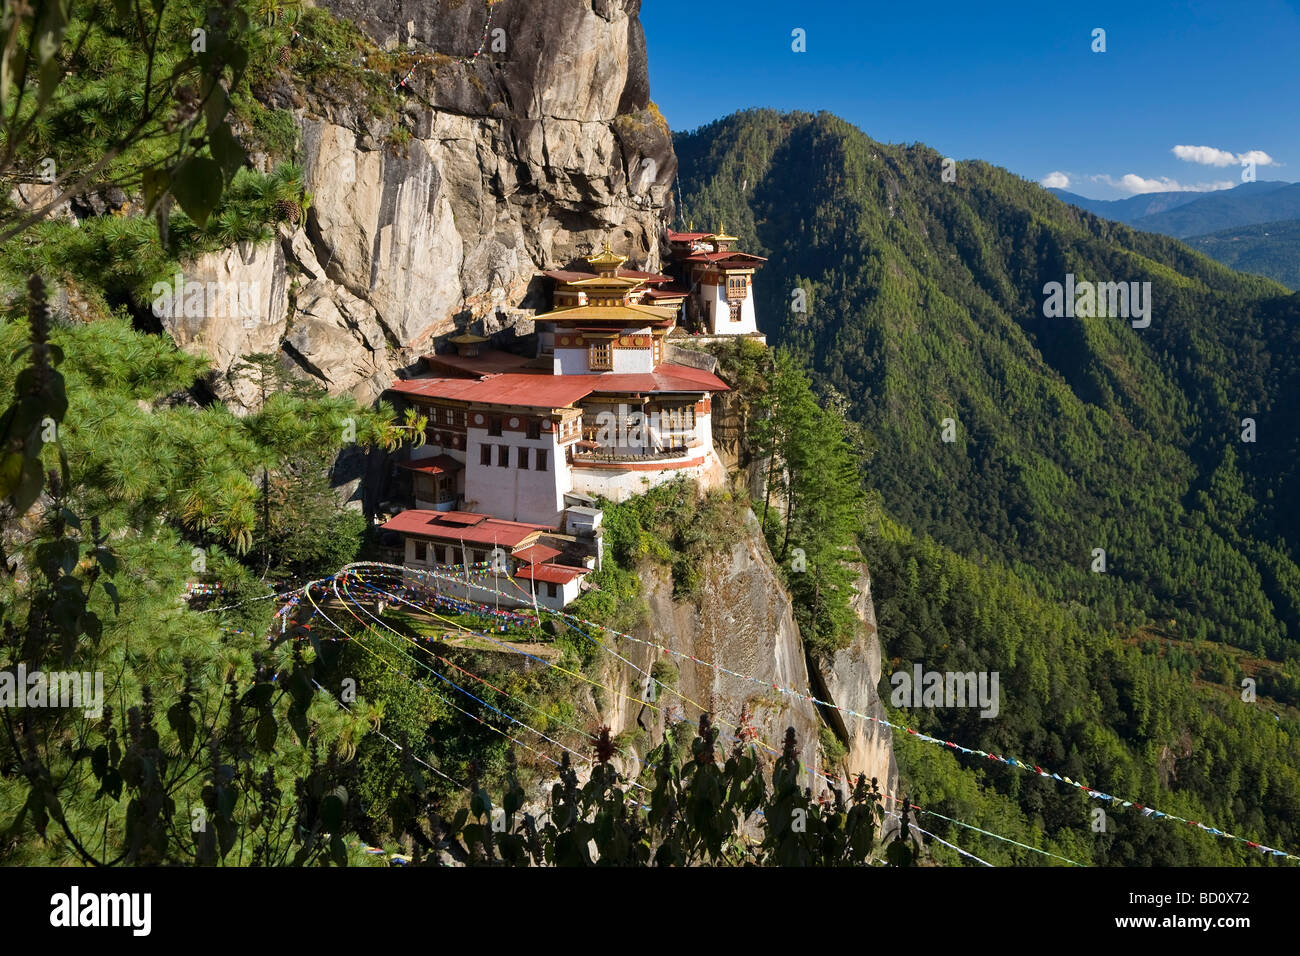 Taktsang Dzong monastery or Tigers Nest built in the 8th century Paro Bhutan - Stock Image